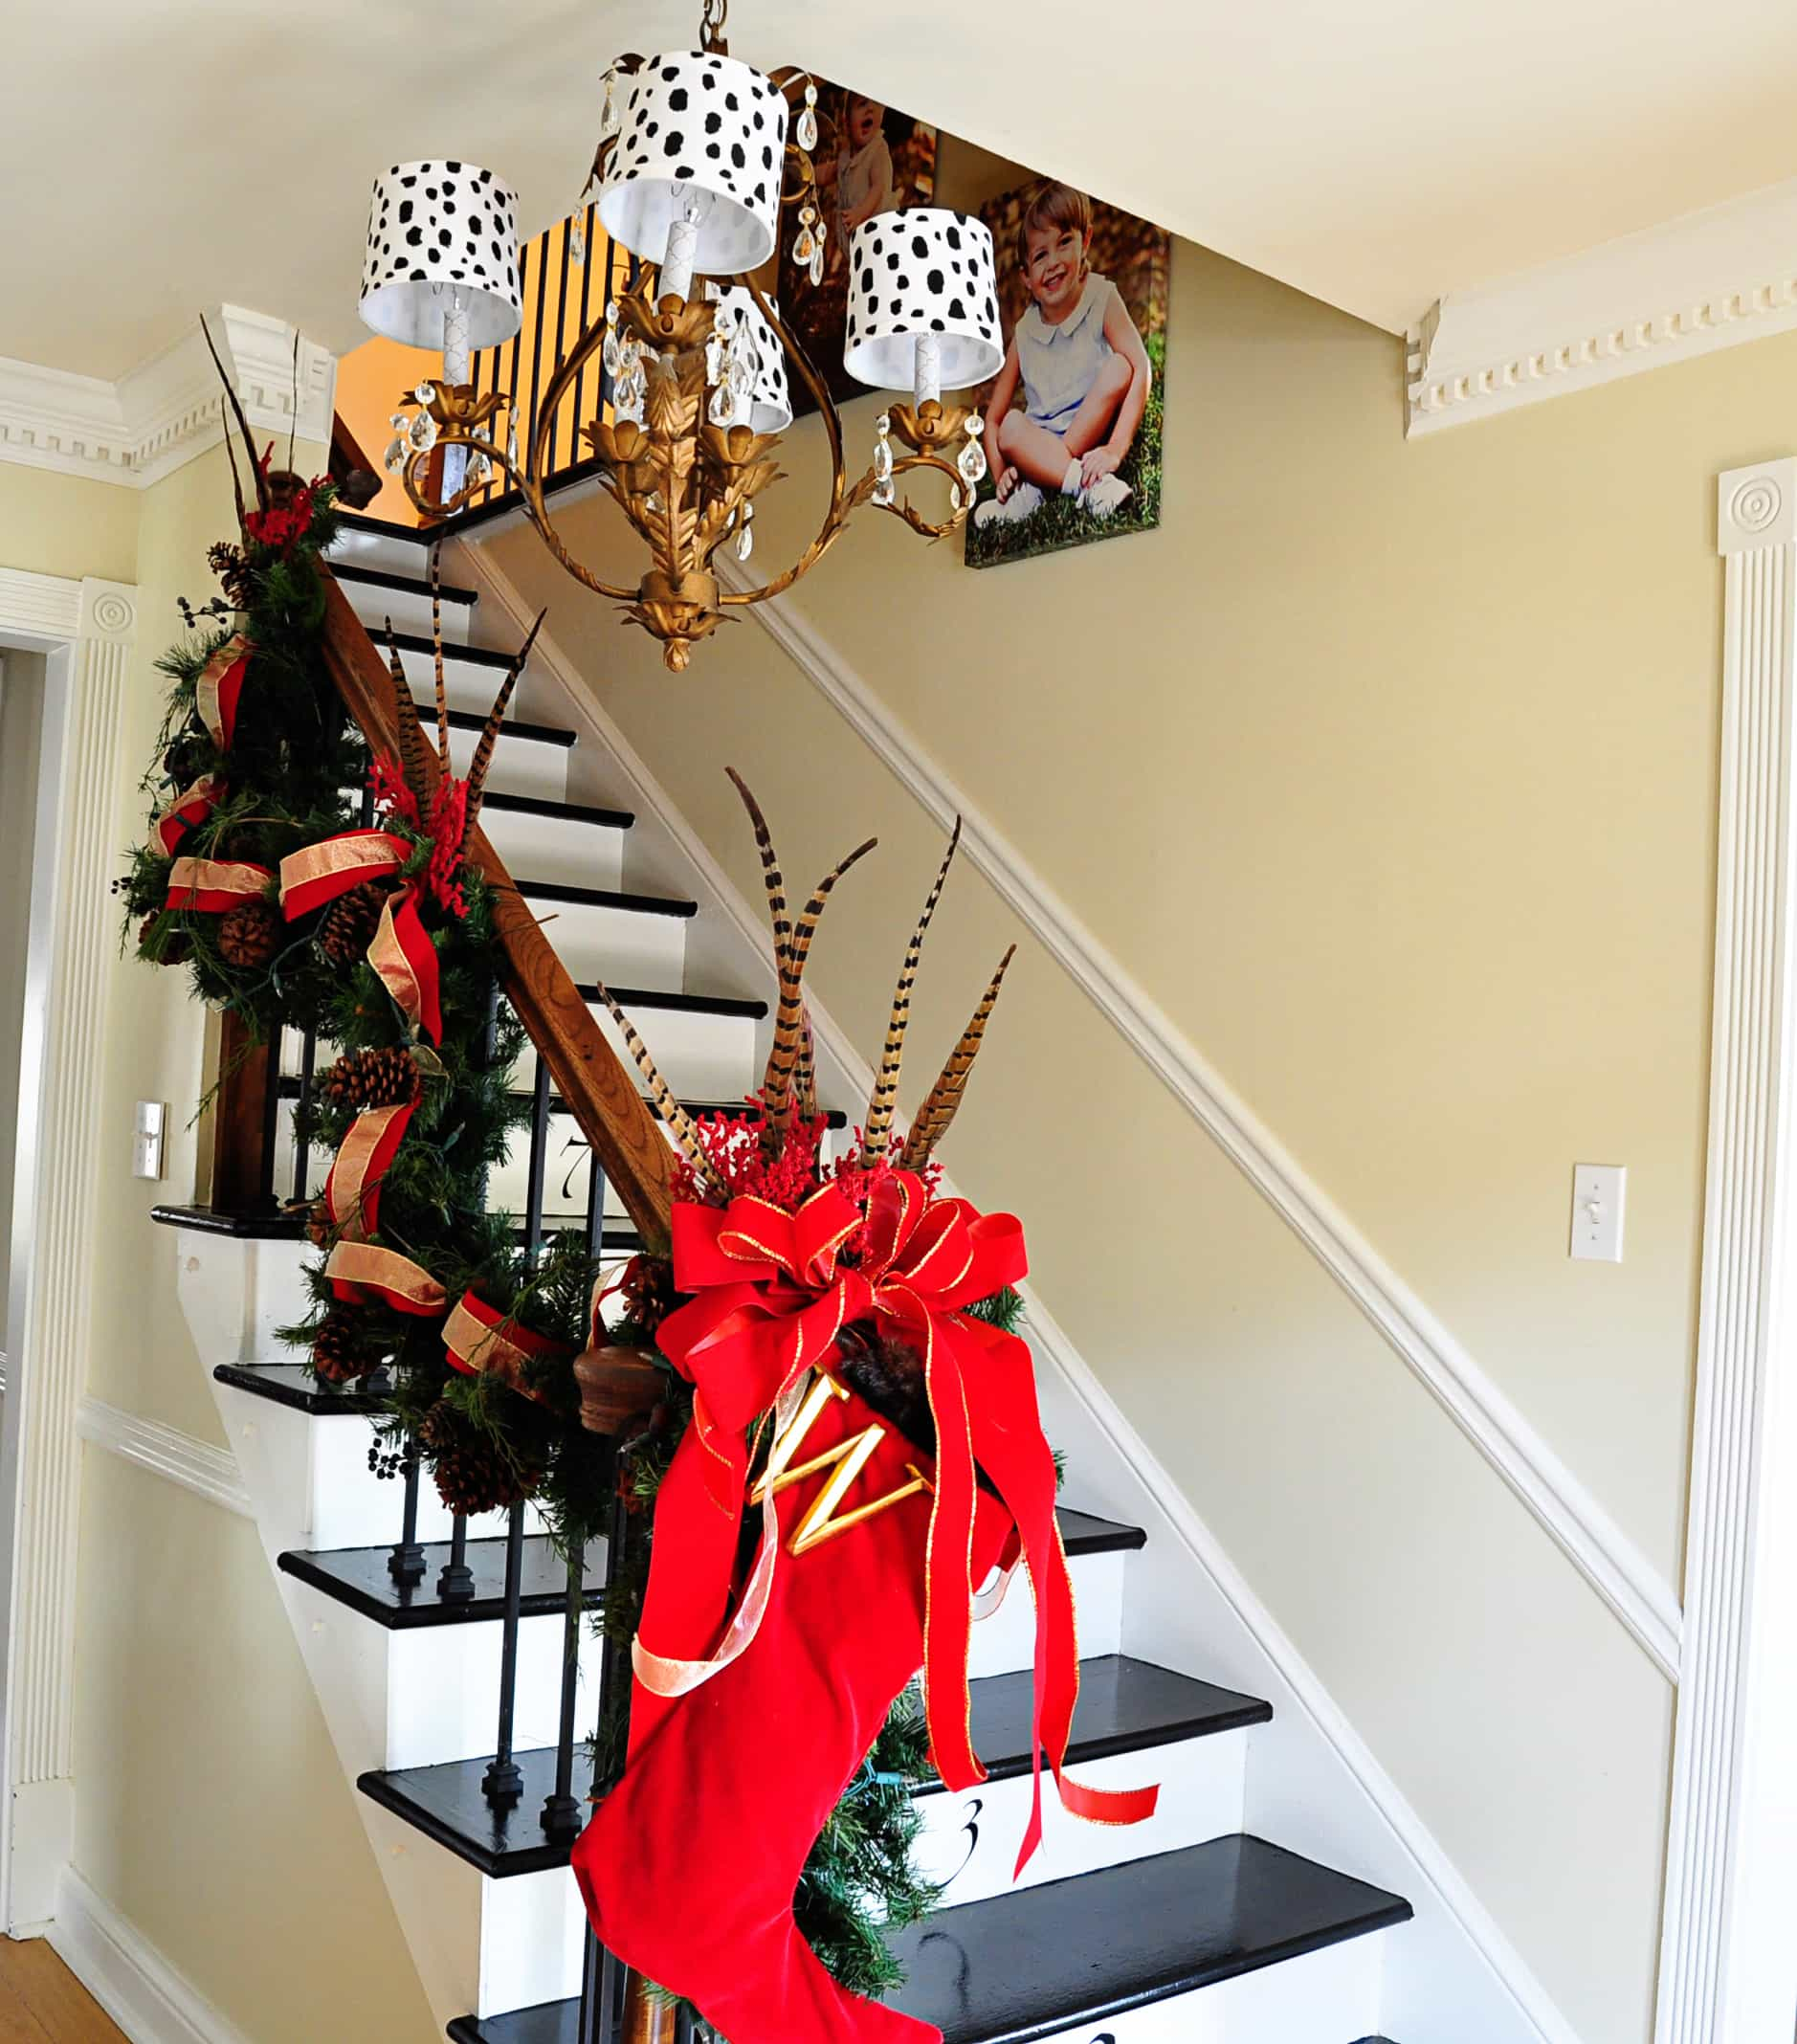 Decorating banisters for christmas with ribbon - I Tie The Garland On To The Banister With A Thin Sheer Ribbon It S Easy To Get Up And Doesn T Ruin The Wood Hand Rail